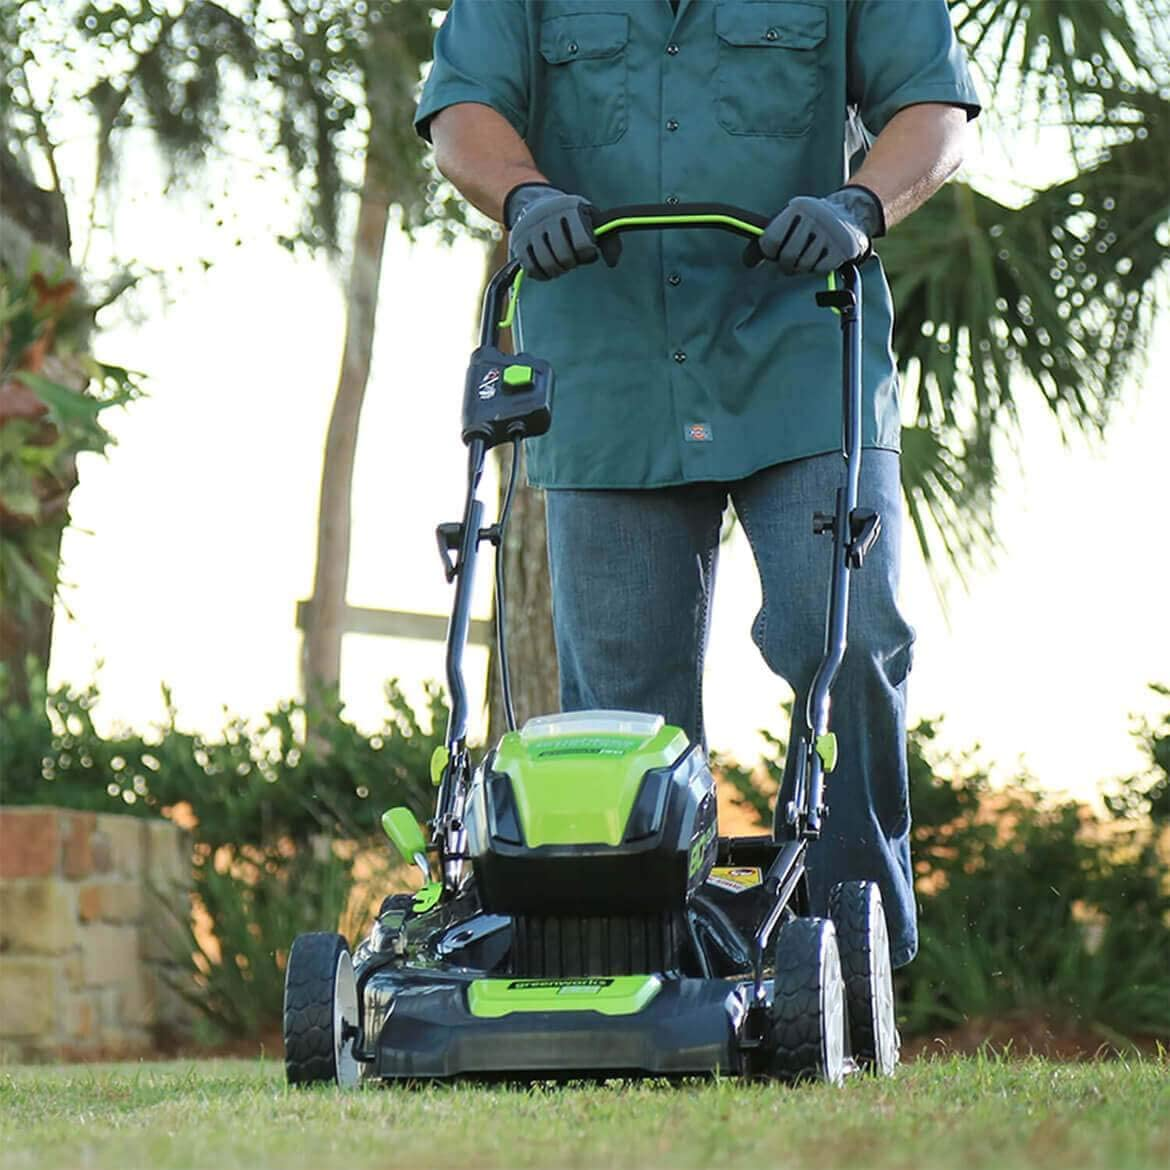 greenworks 80v mower review